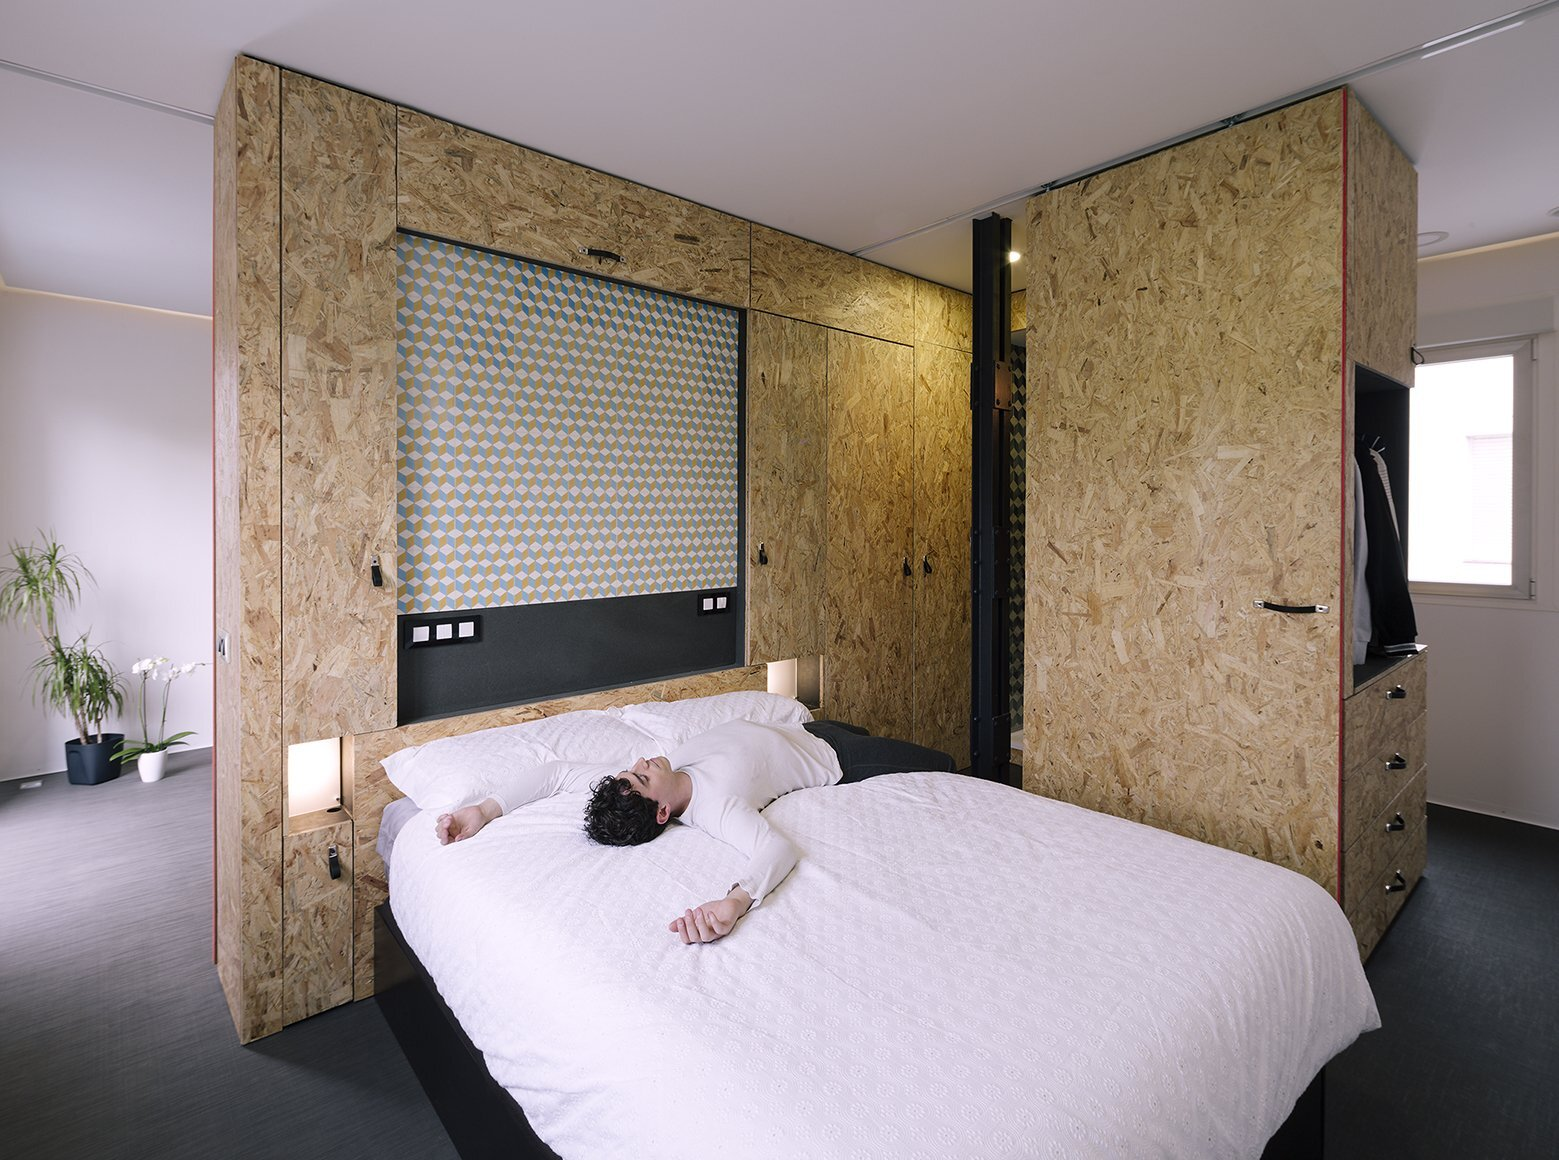 Small Apartment - The POP-UP House - TallerDE2 Arquitectos - Madrid - Bedroom & Bathroom - Humble Homes